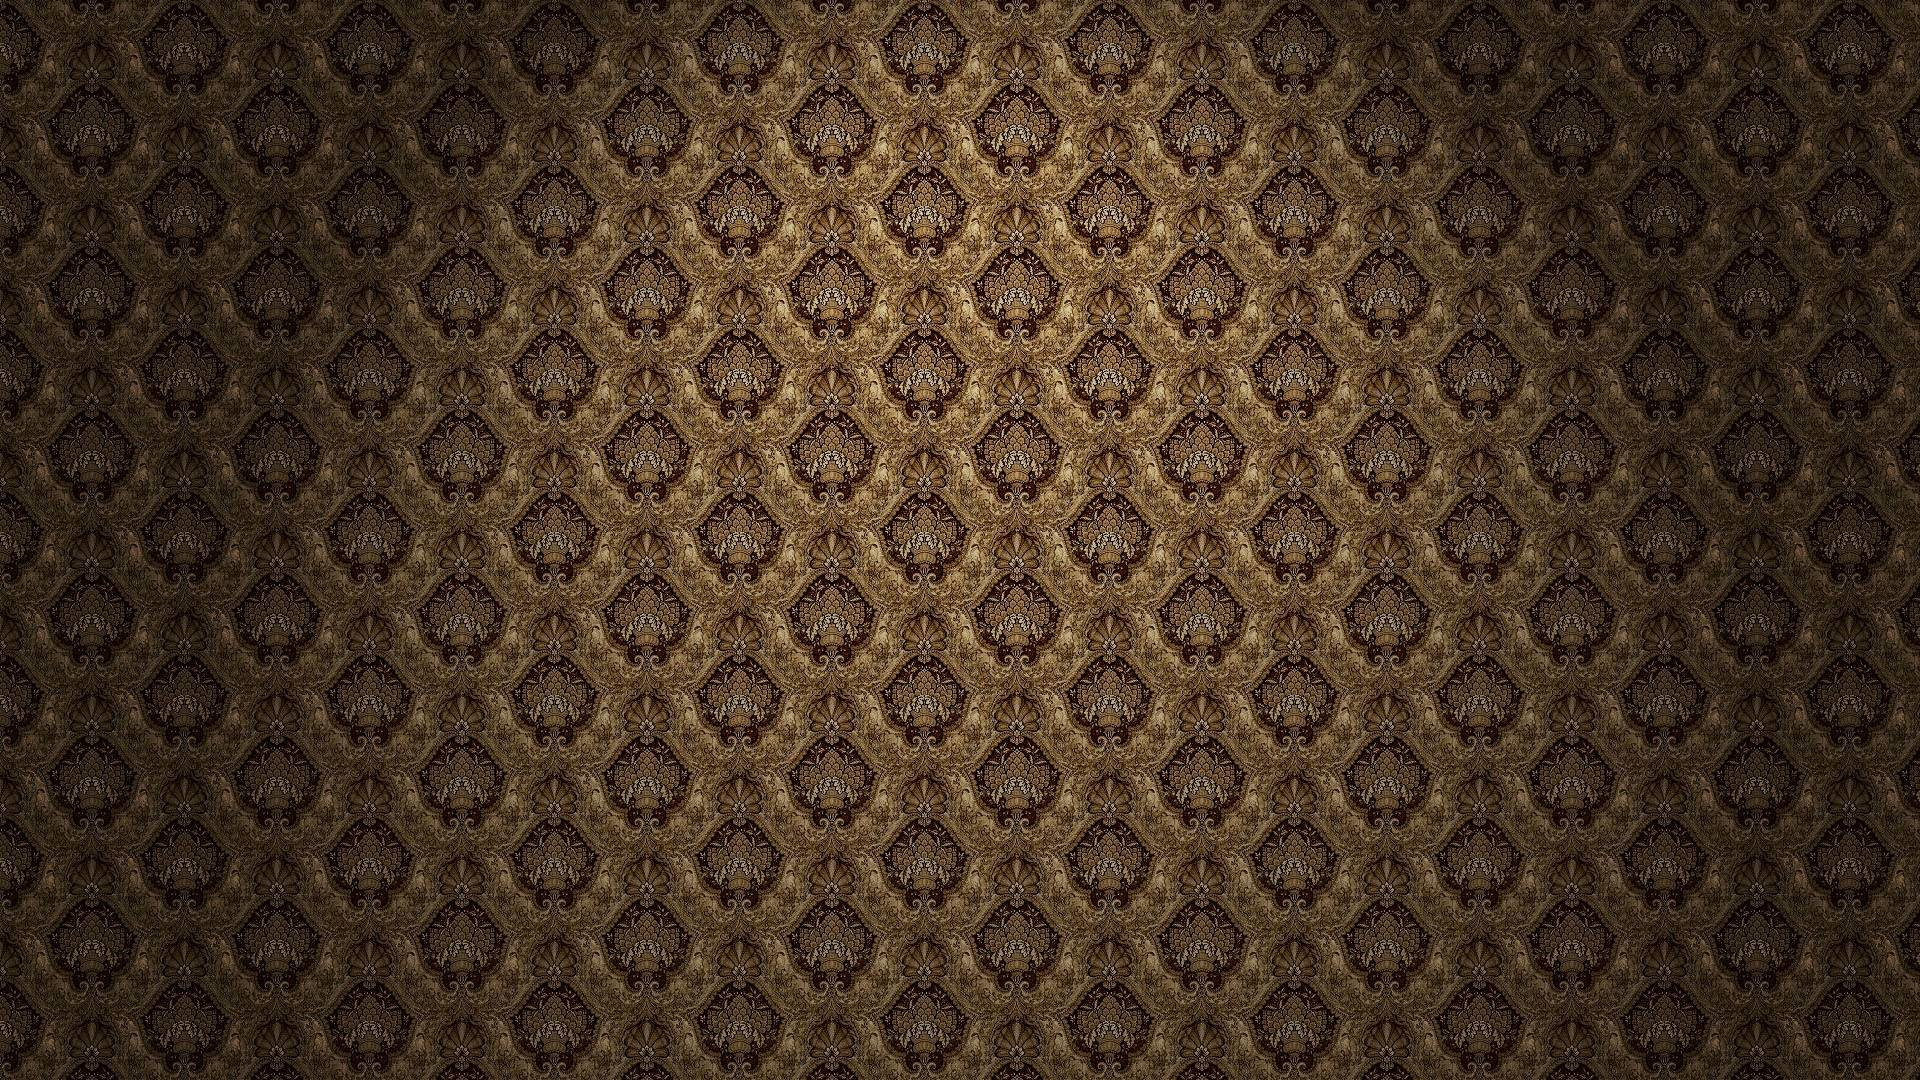 black and gold wallpaper – 1920×1080 High Definition Wallpaper .